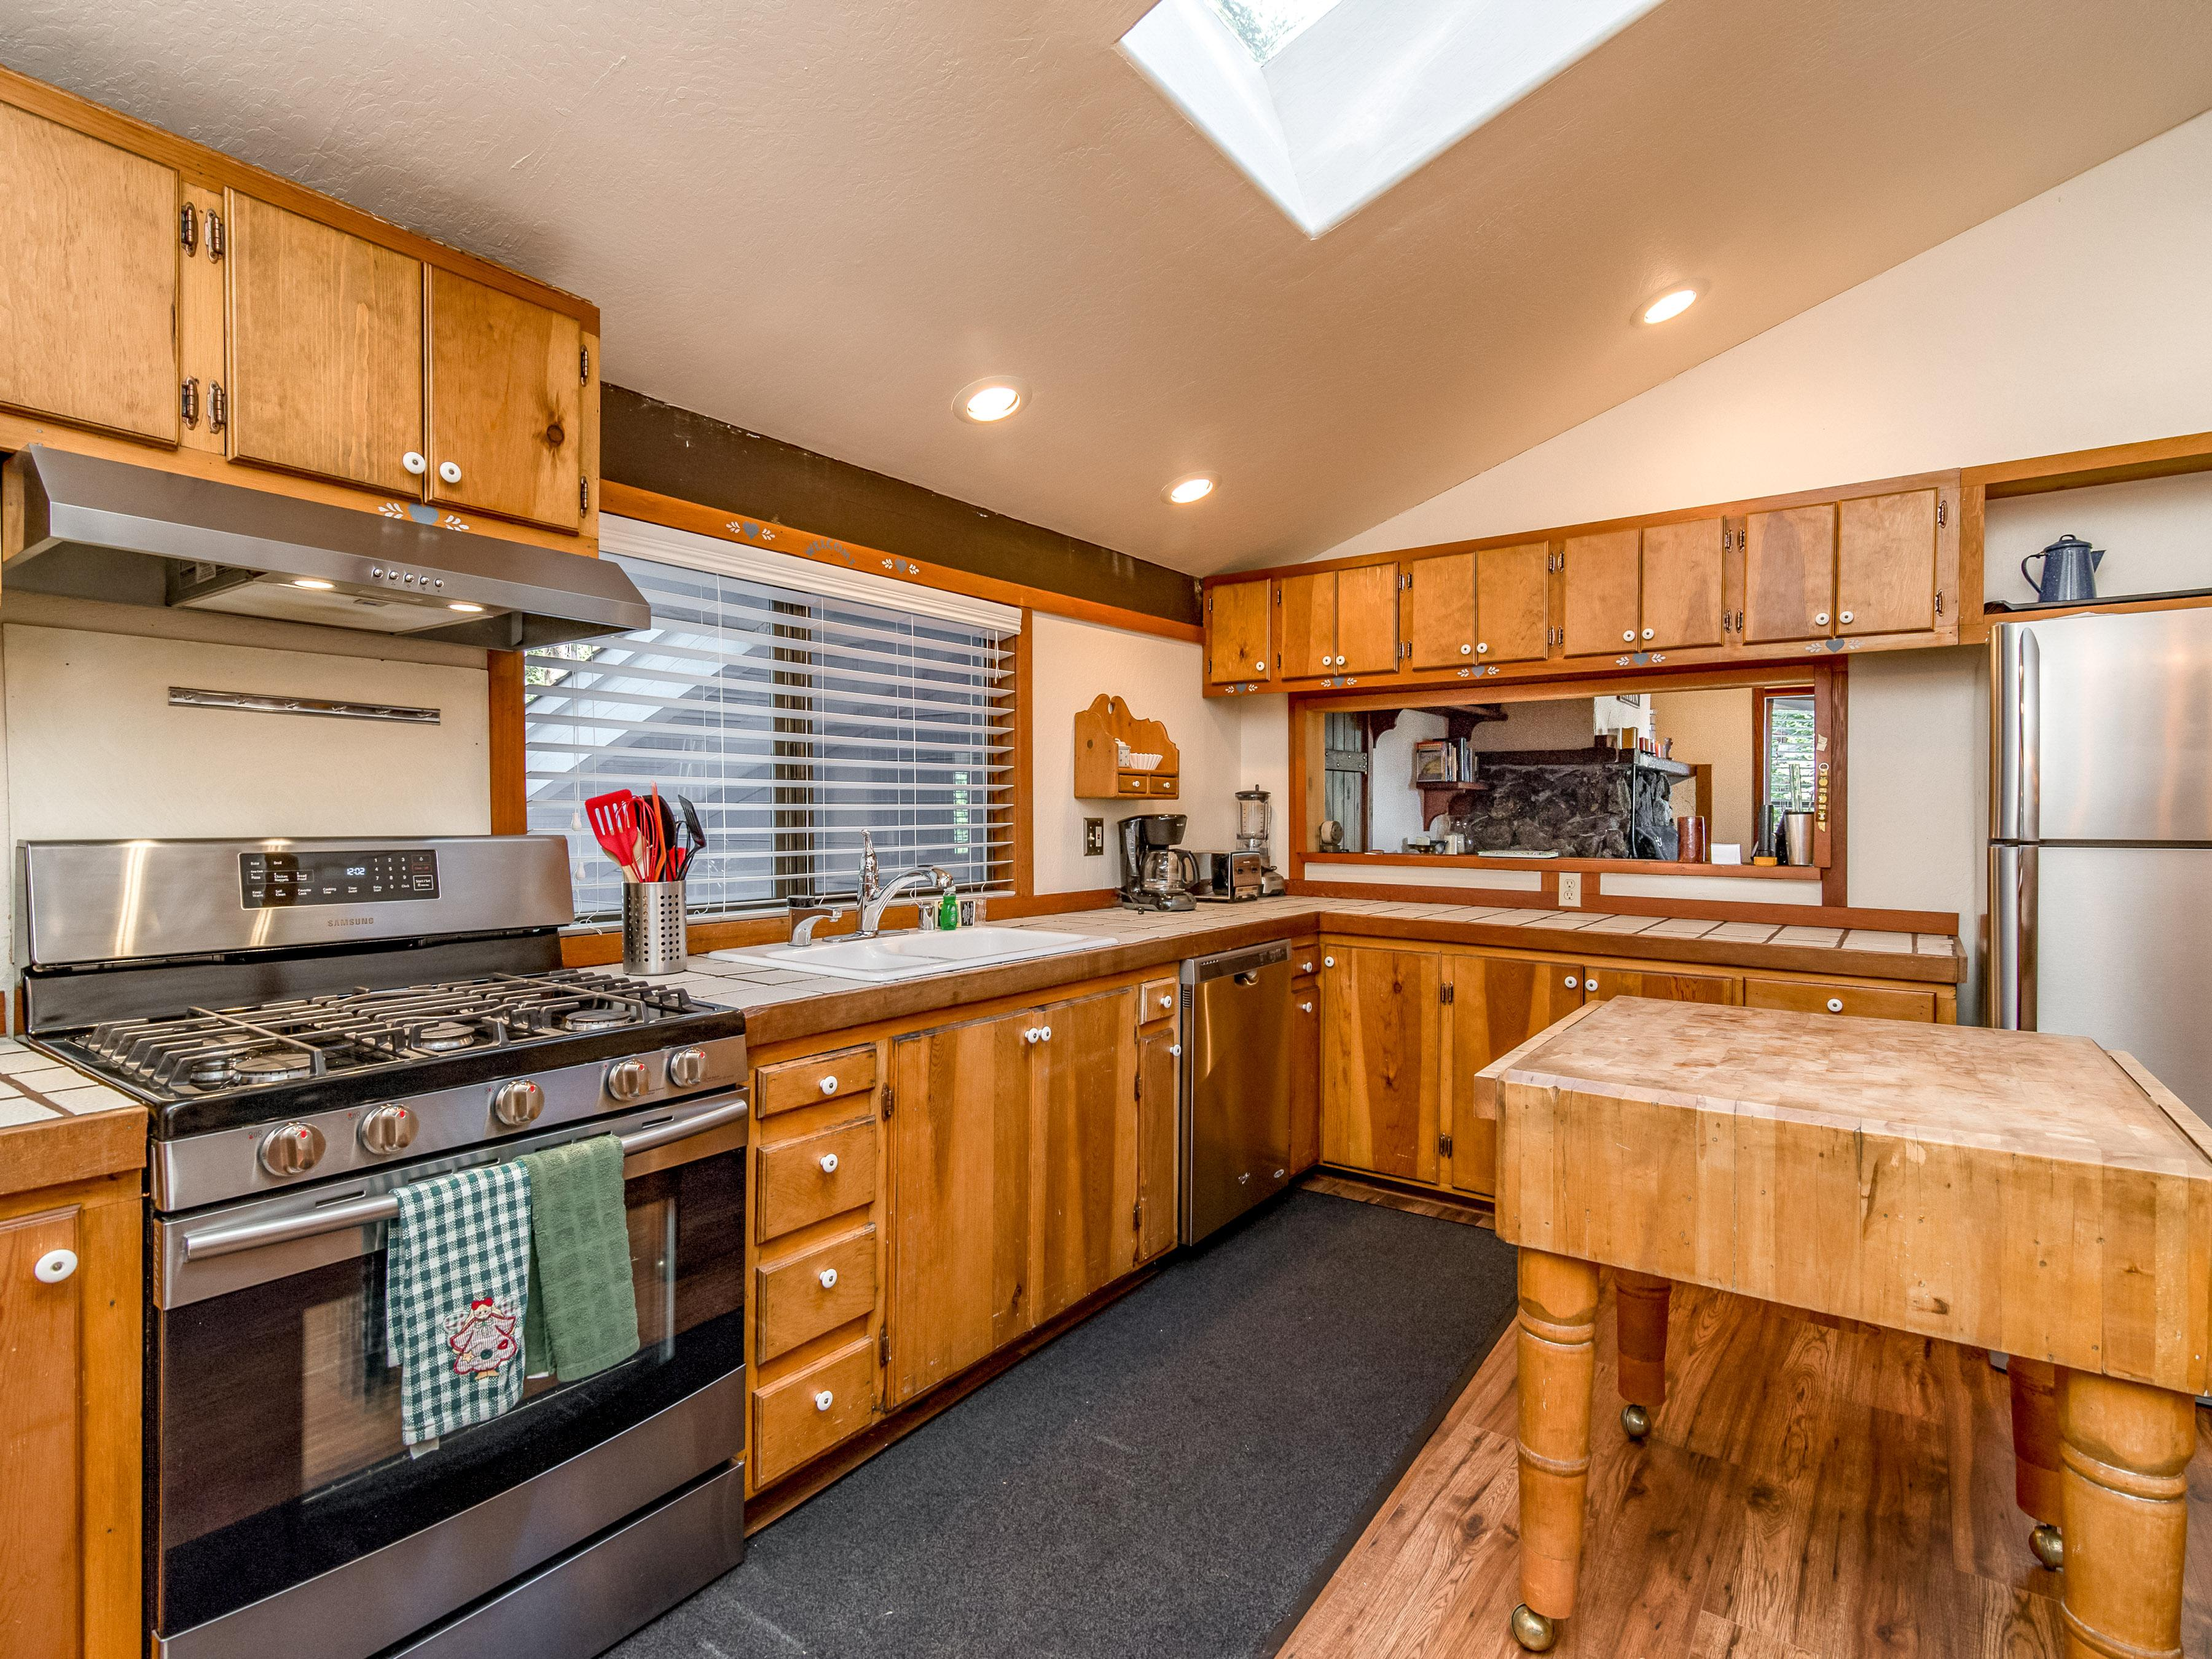 The well-equipped kitchen has stainless steel appliances, including a gas stove.